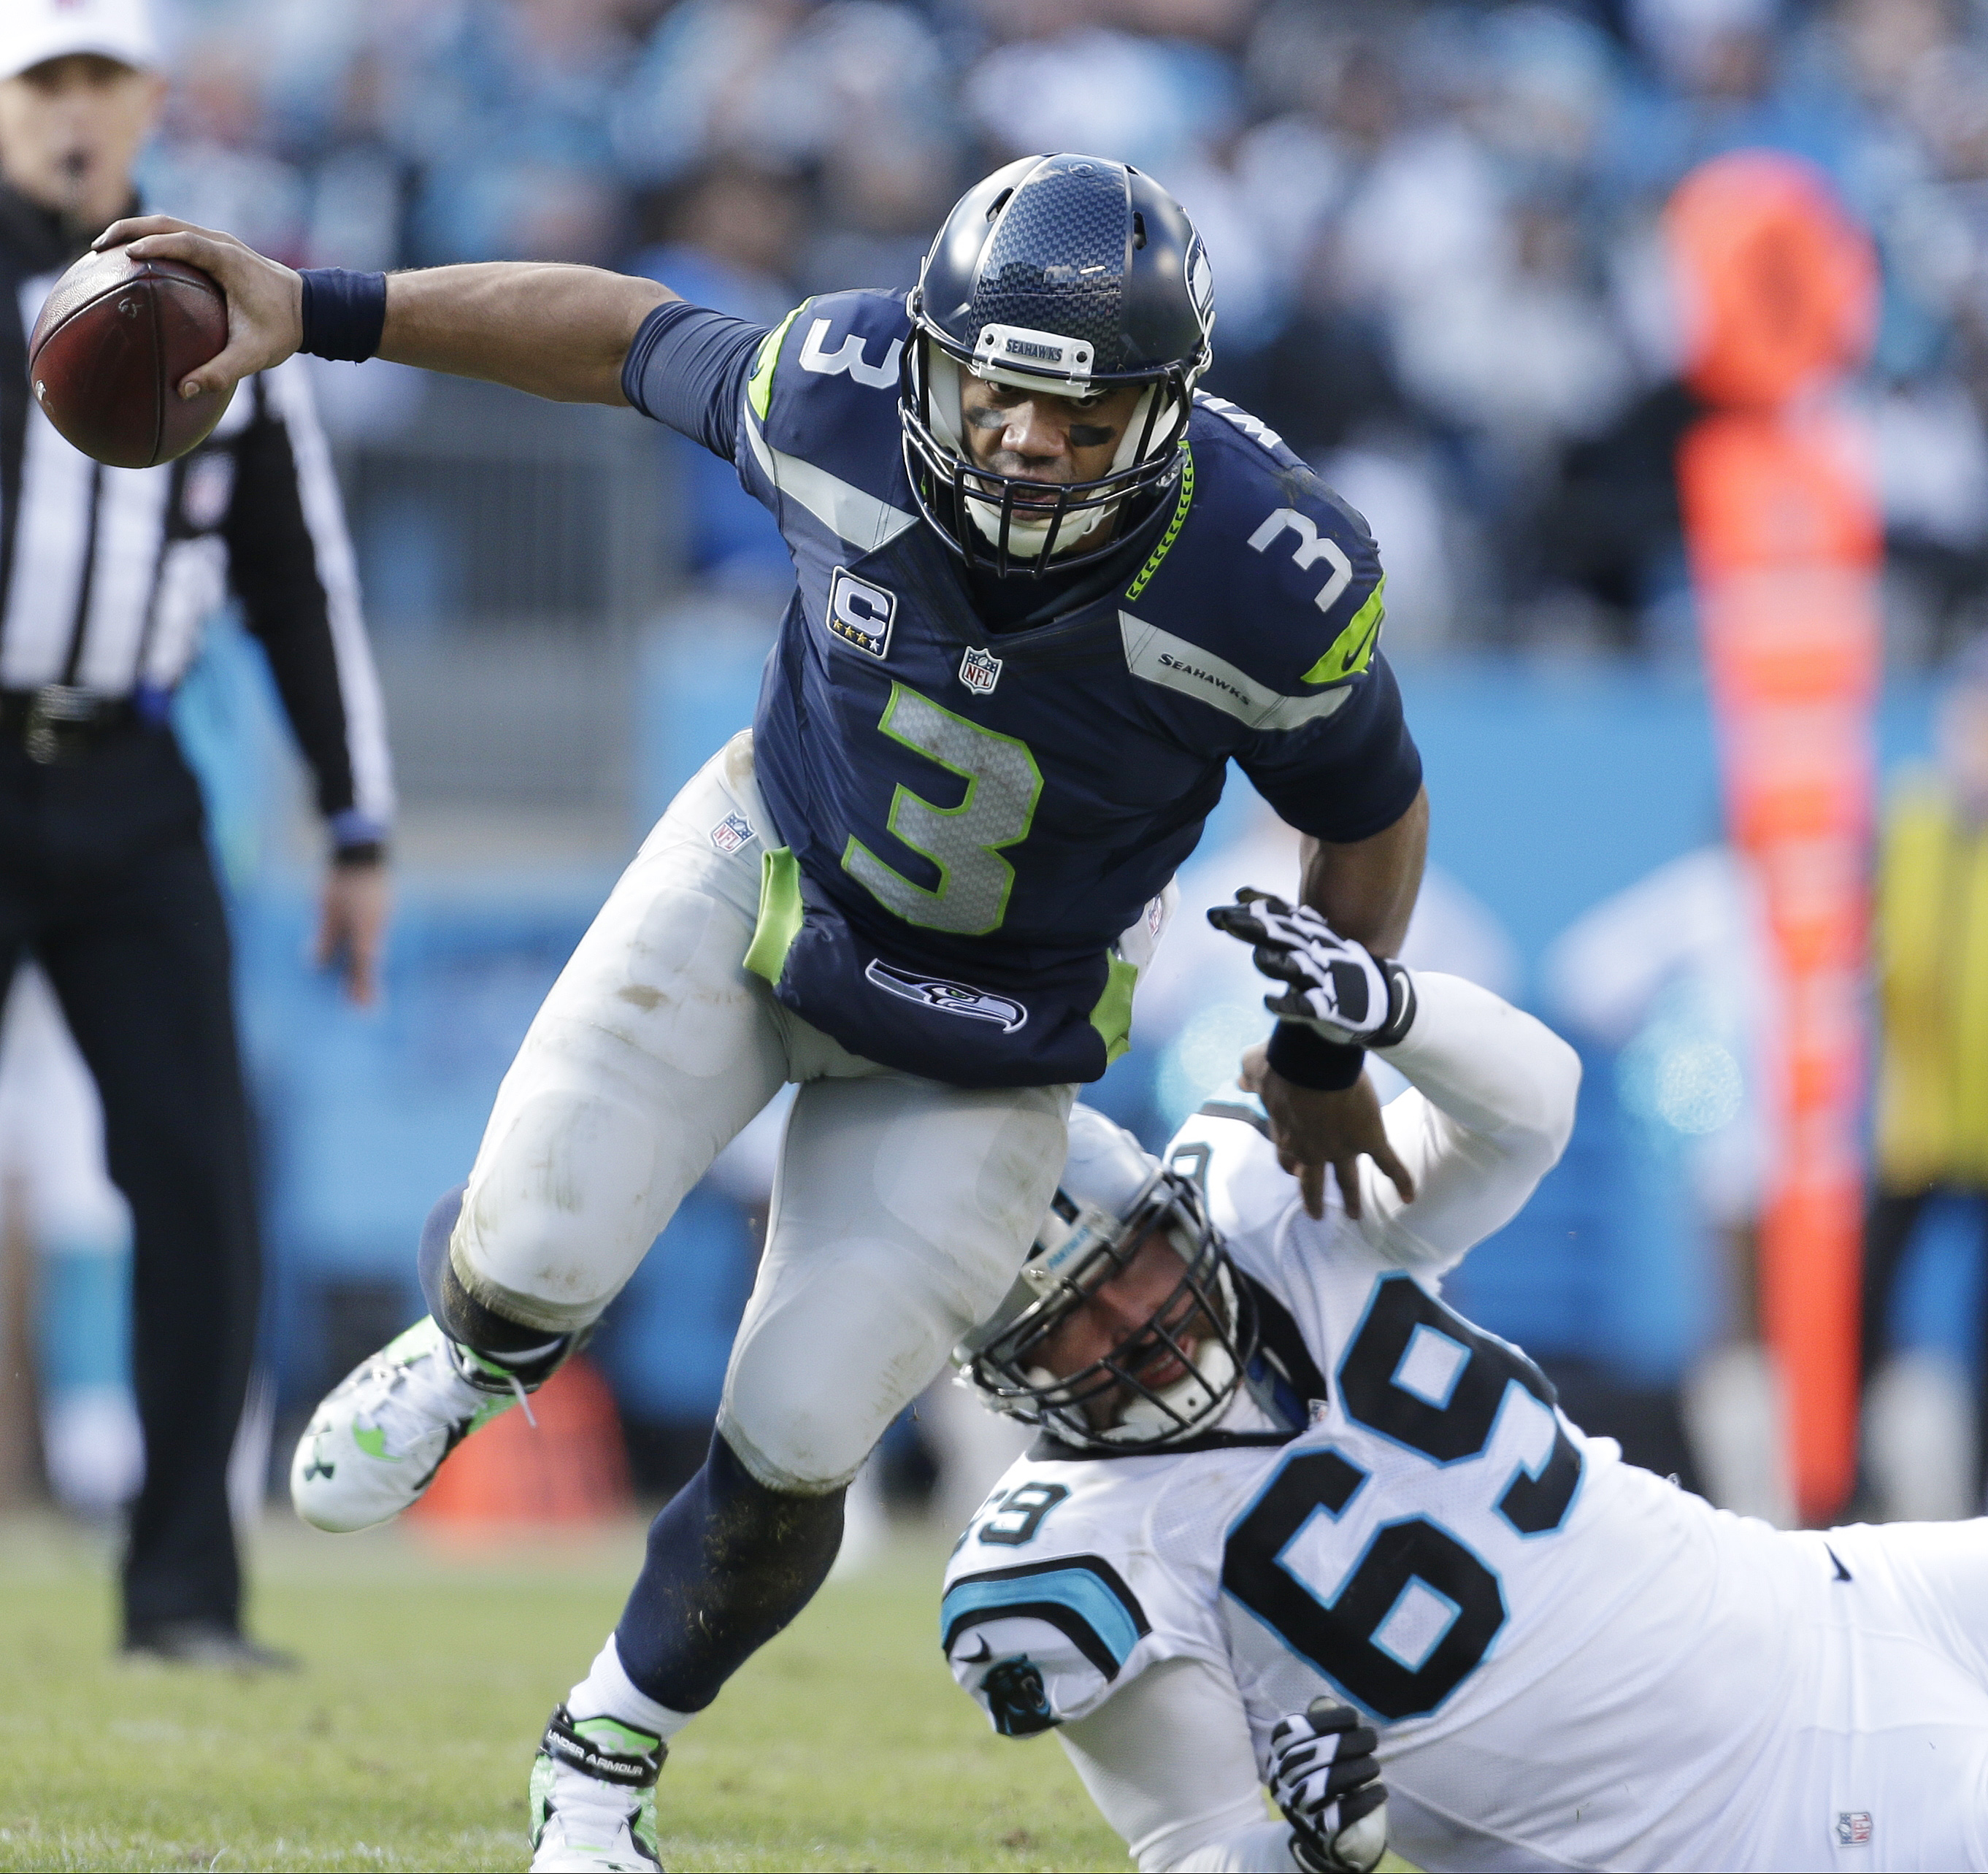 Seattle Seahawks quarterback Russell Wilson (3) runs by Carolina Panthers defensive end Jared Allen (69) during the first half of an NFL divisional playoff football game, Sunday, Jan. 17, 2016, in Charlotte, N.C. (AP Photo/Bob Leverone)